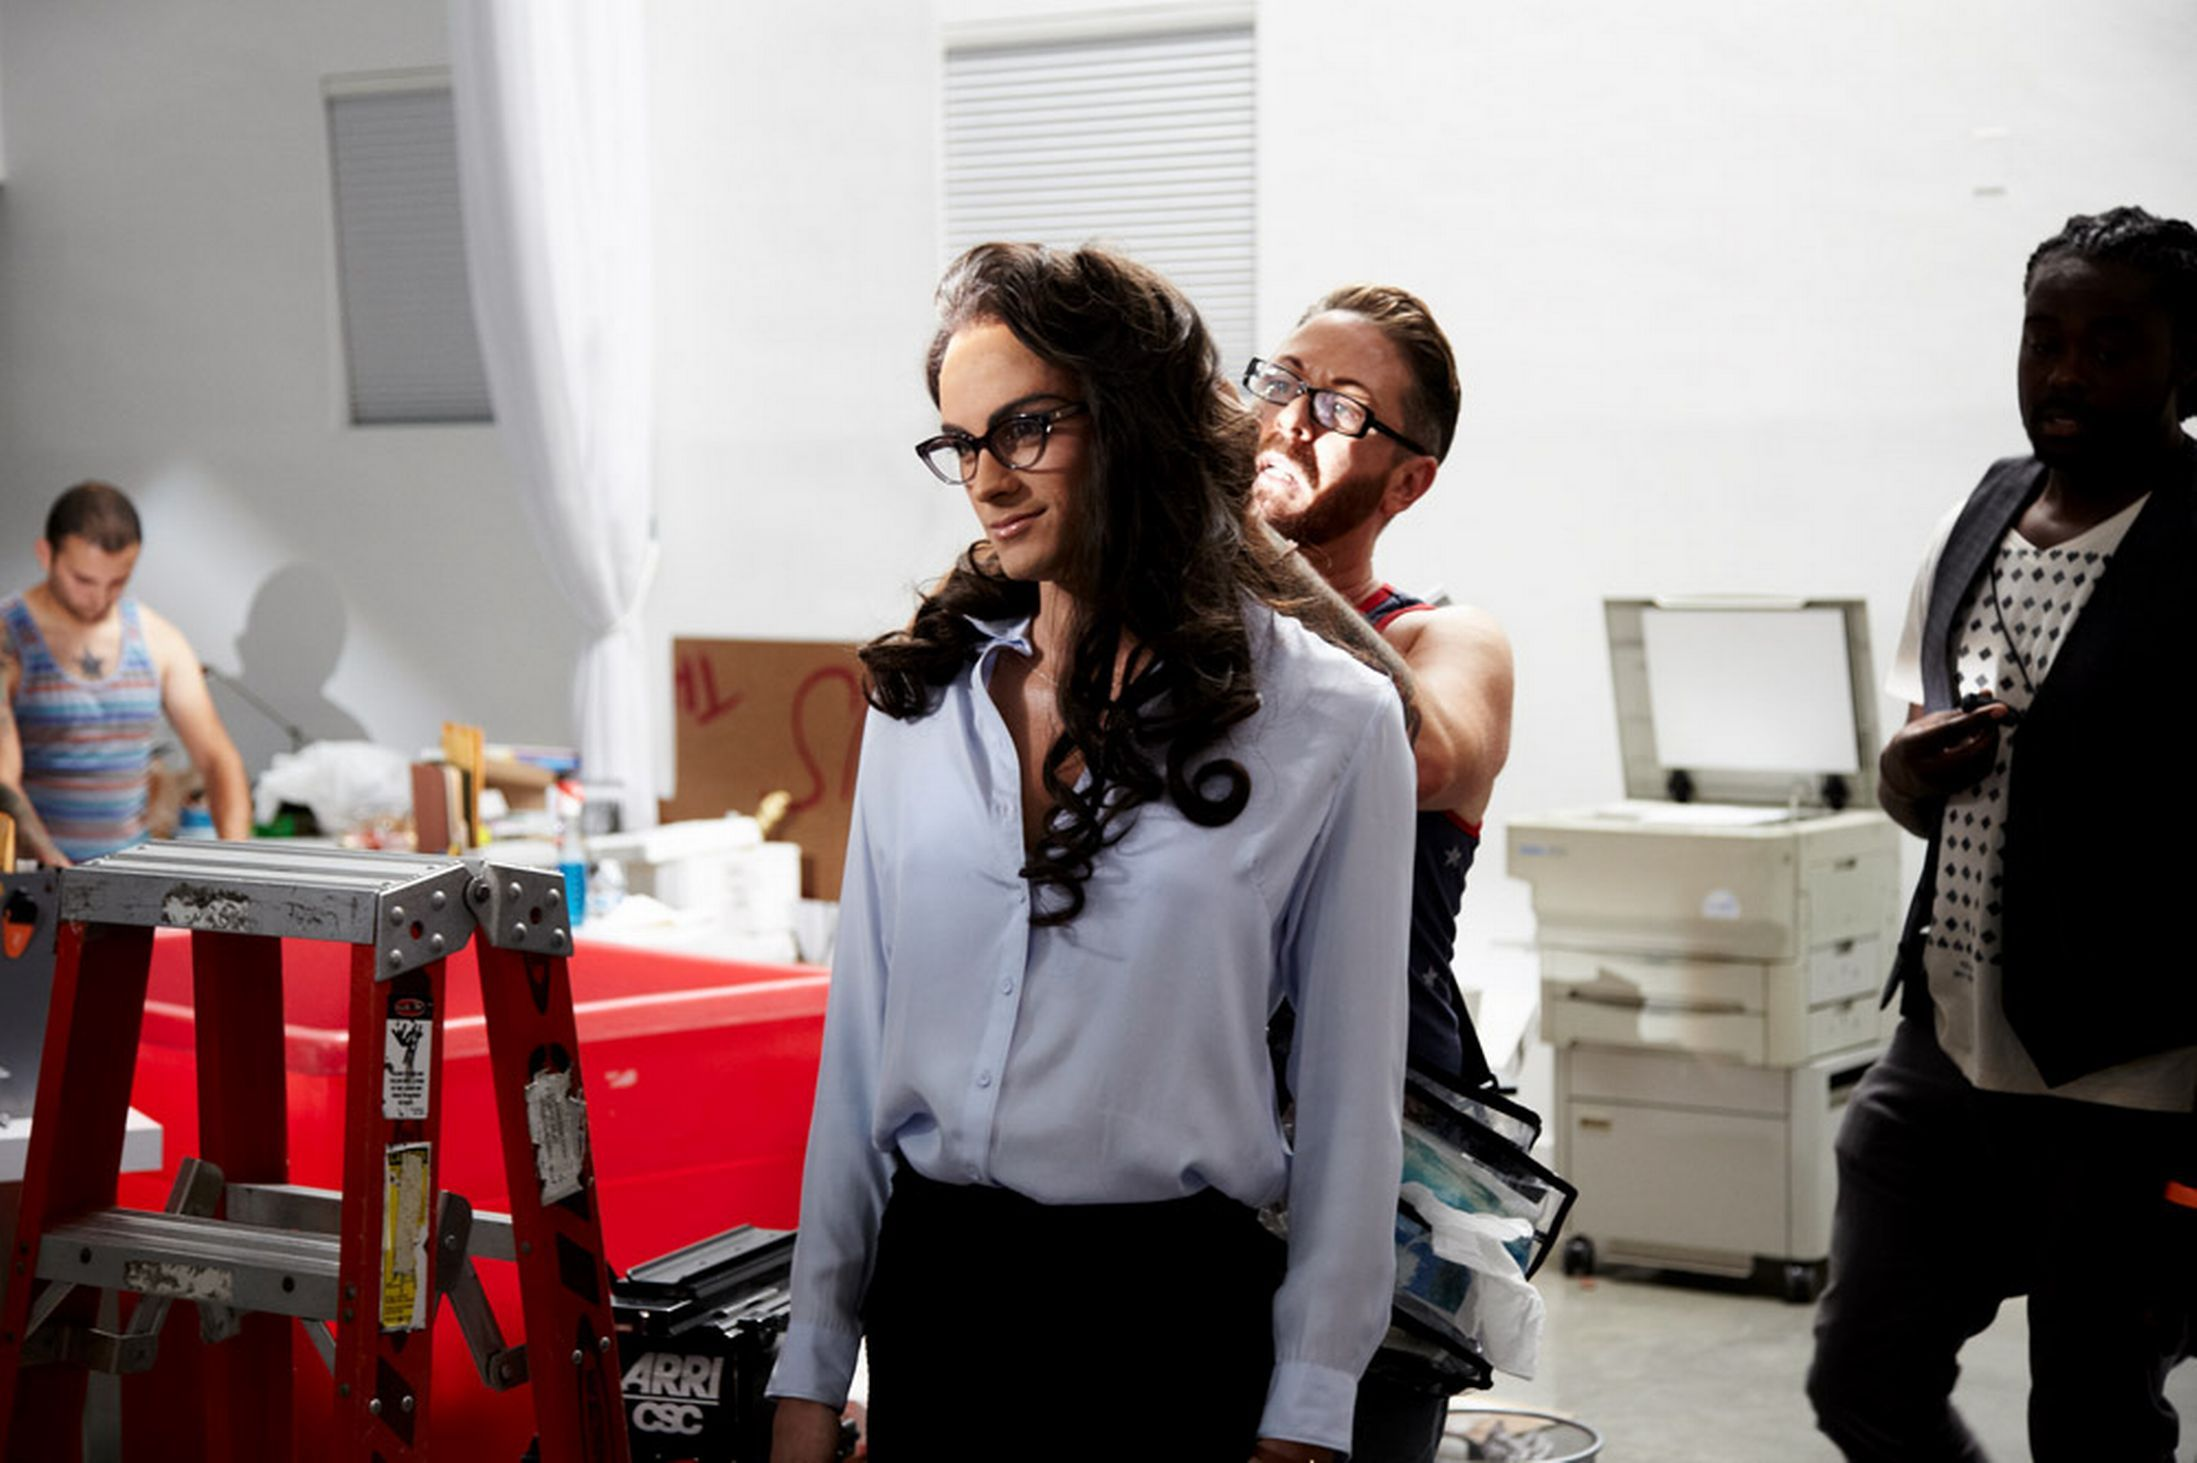 Zayn malik cross dresses as sexy secretary in best song ever one direction best song ever video zayn dressed as sexy secretary thecheapjerseys Image collections